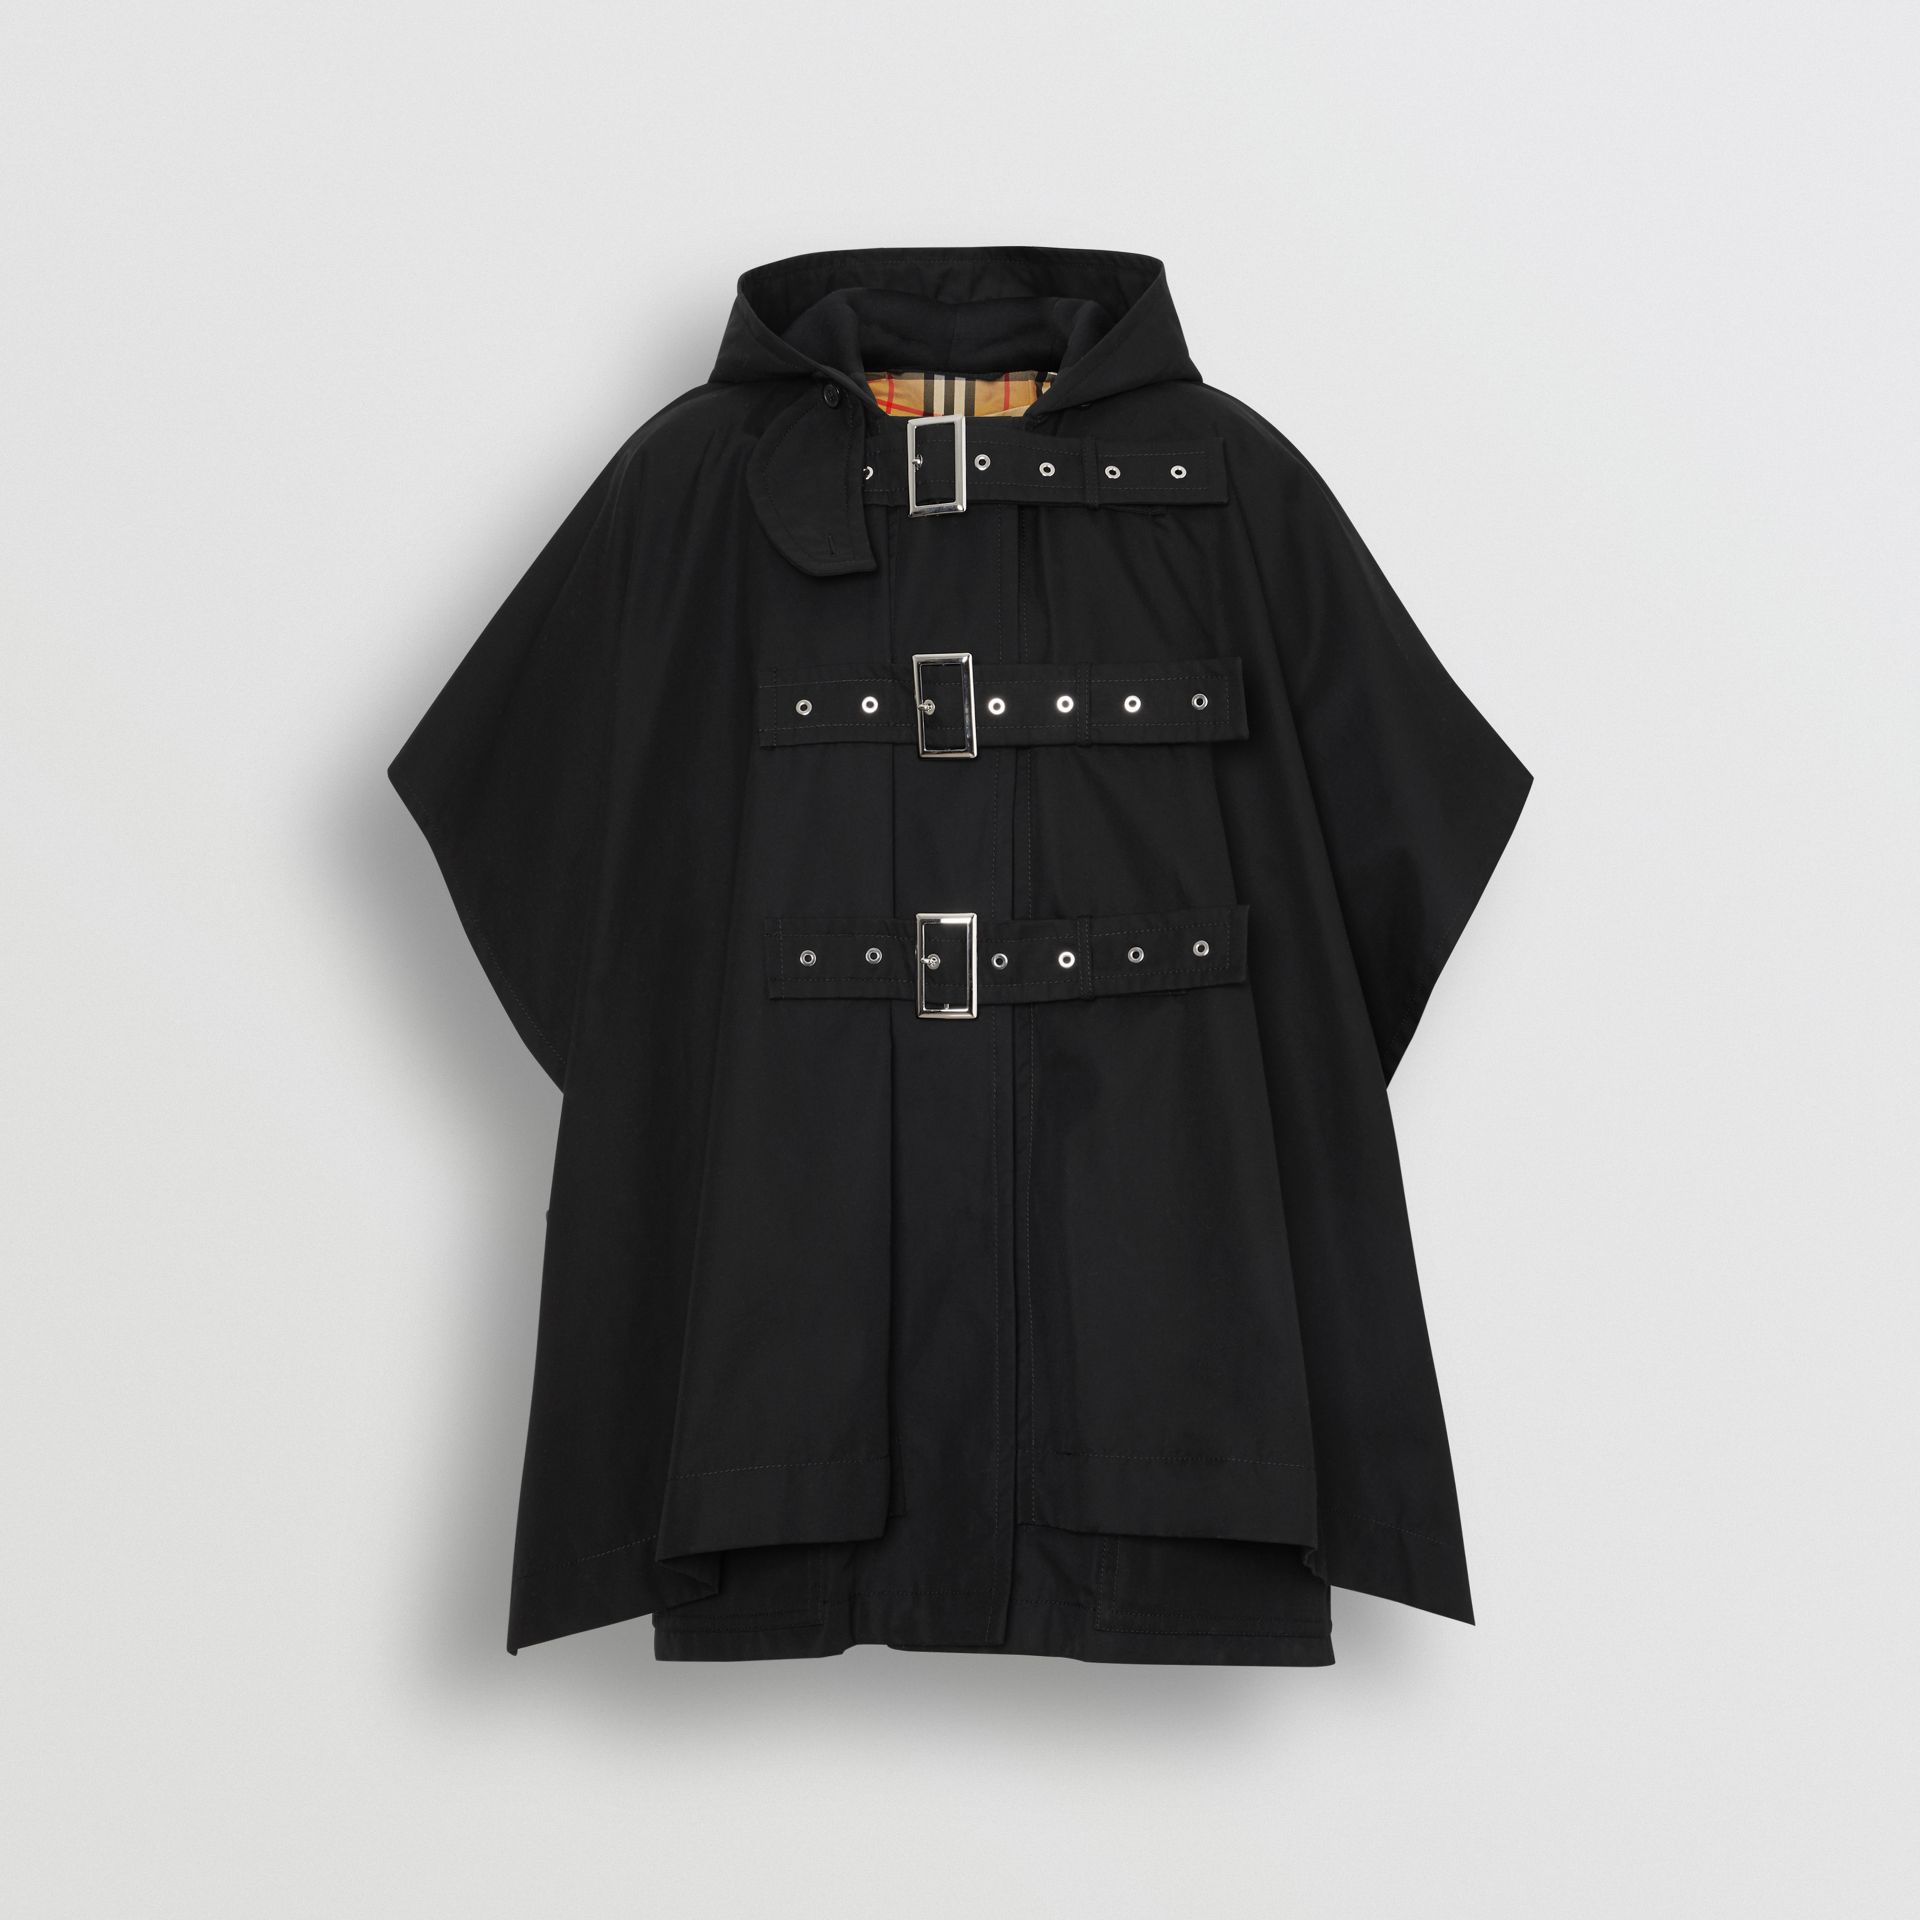 Triple Buckle Cotton Gabardine Cape Coat in Black - Women | Burberry Hong Kong S.A.R - gallery image 3